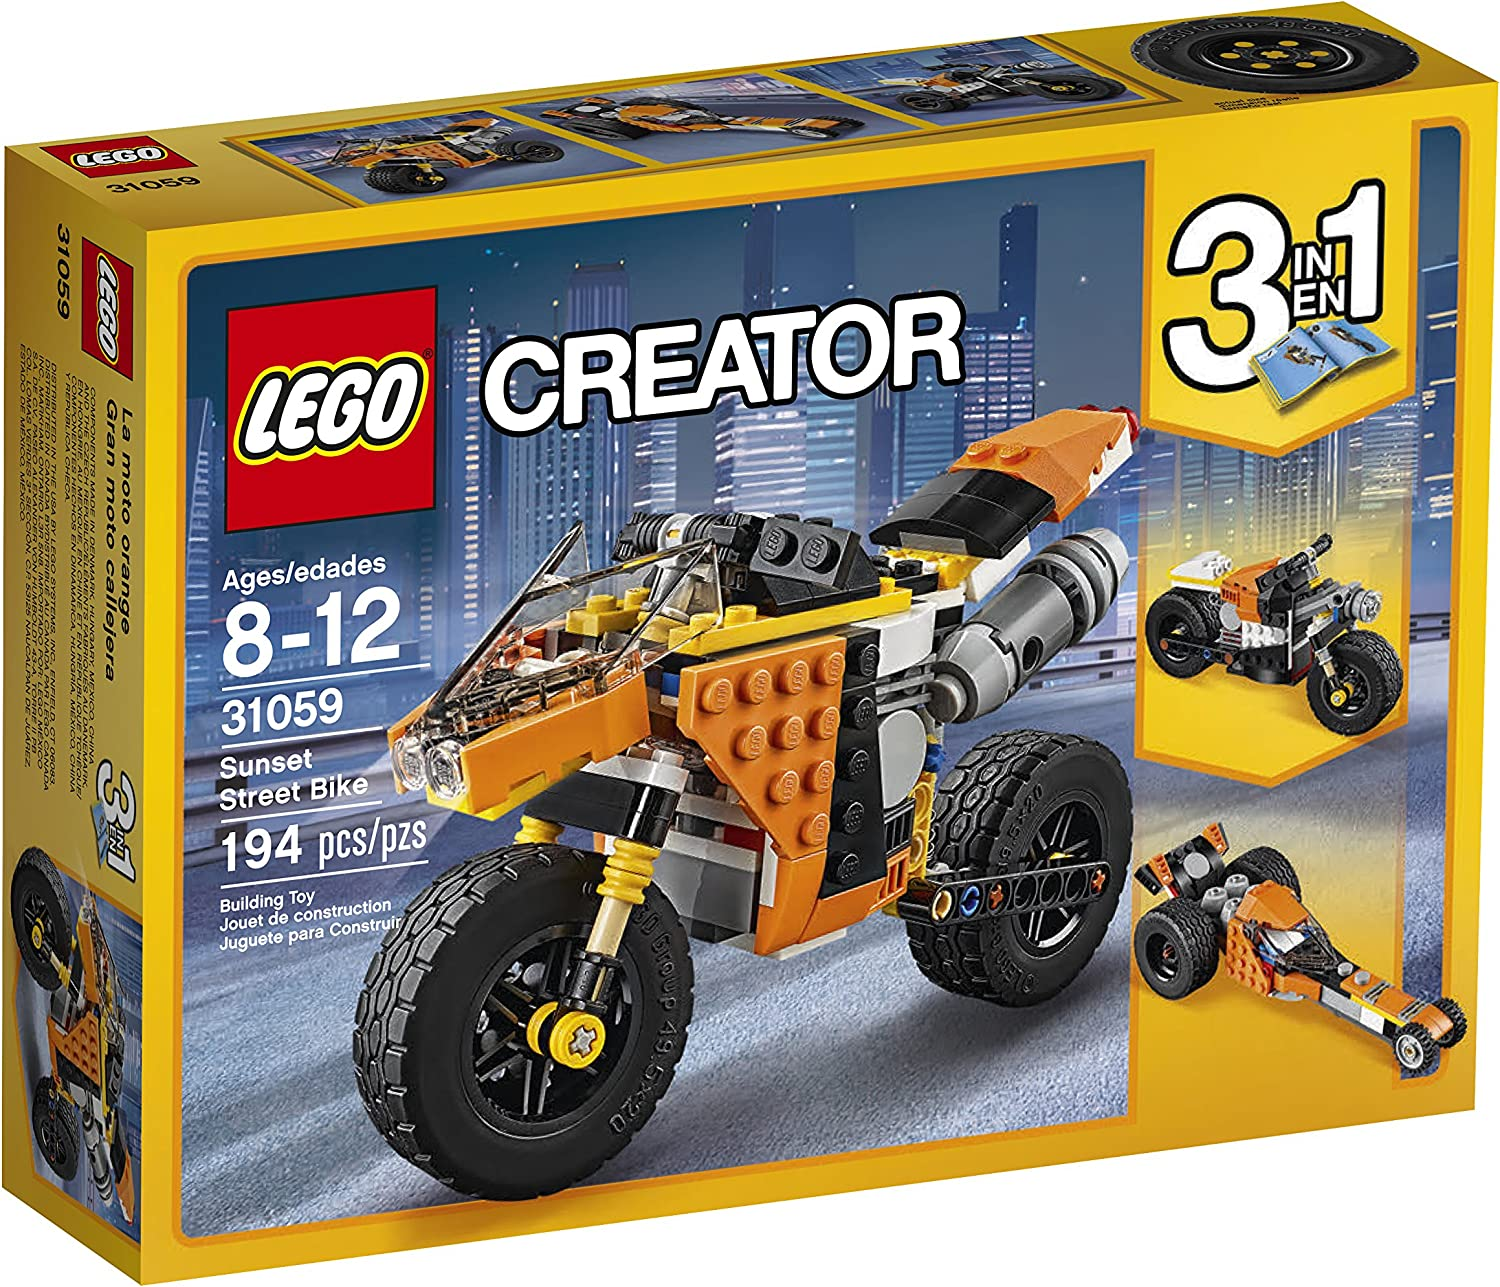 7 Best LEGO Motorcycle Sets Reviews of 2021 14